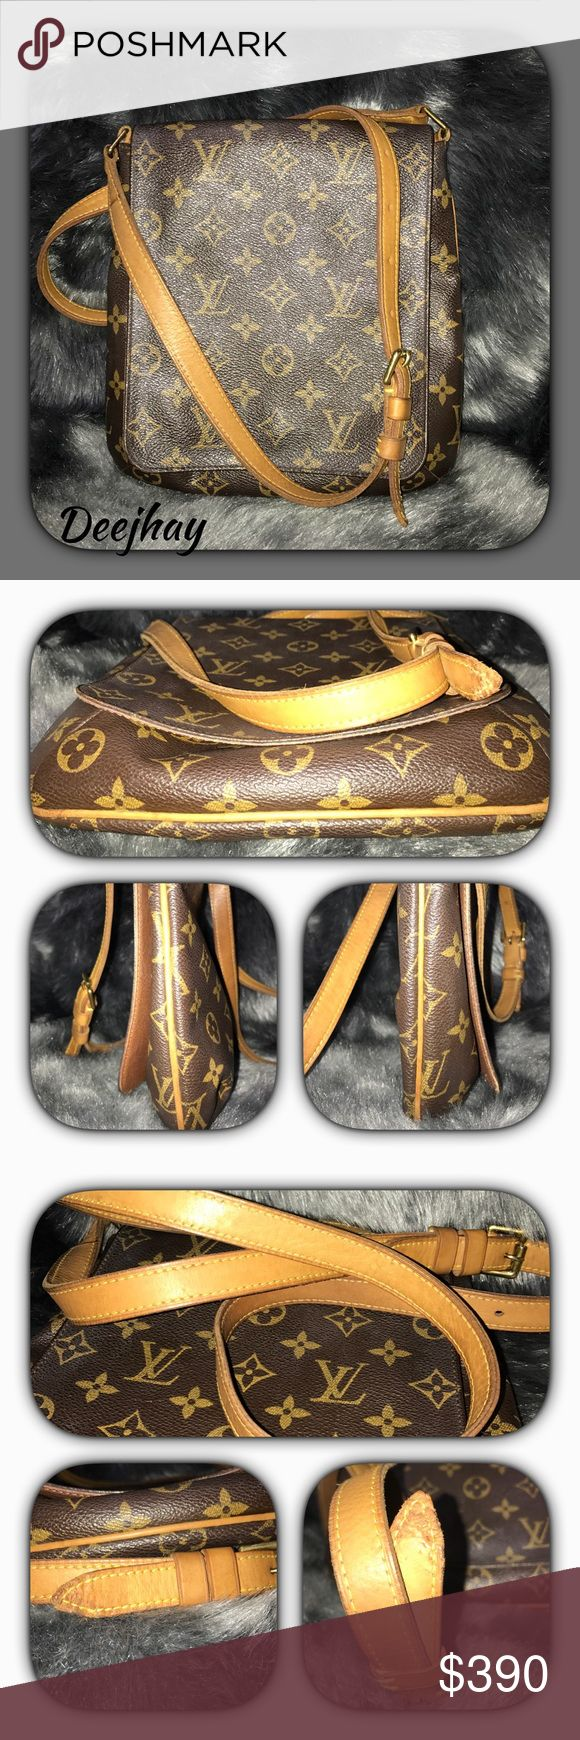 Louis Vuitton salsa musette long strap ~date code LM003                                    ~outside monogram is in good condition.                                                     ~no exposed piping.                                  ~strap show sign of wear. End of strap has my baby bite in it.                               ~inside has some pen mark. Louis Vuitton Bags Crossbody Bags